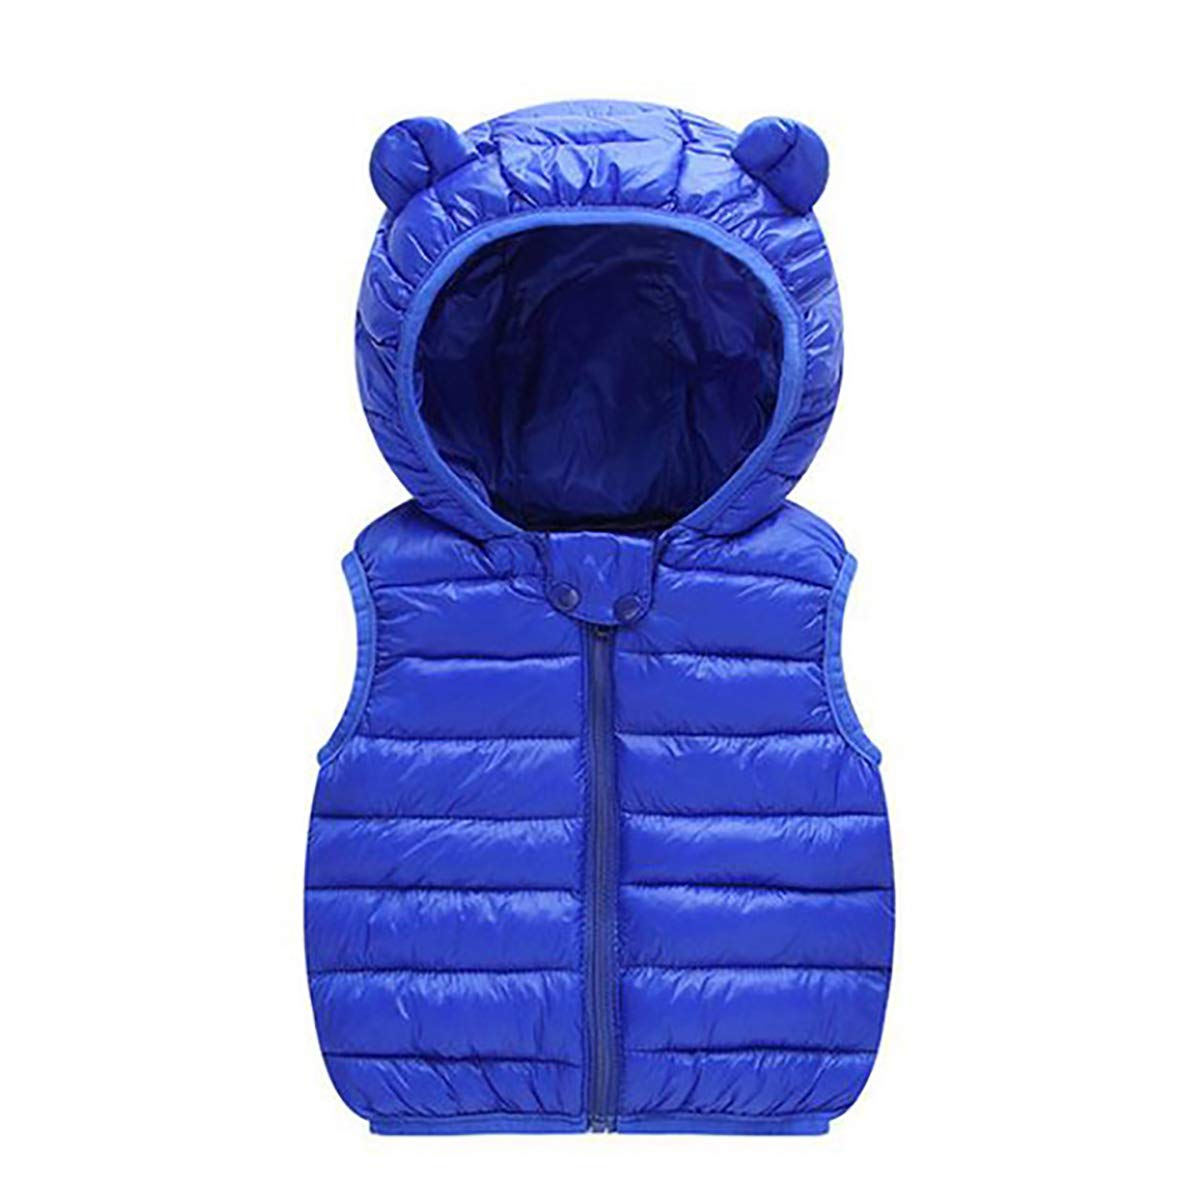 FASH Toddler Baby Kids Little Boy Girl Down Vest Winter Hooded Sleeveless Jacket Thick Keep Warm Outerwear for 1-5 Y,Darkblue,110 by FASH